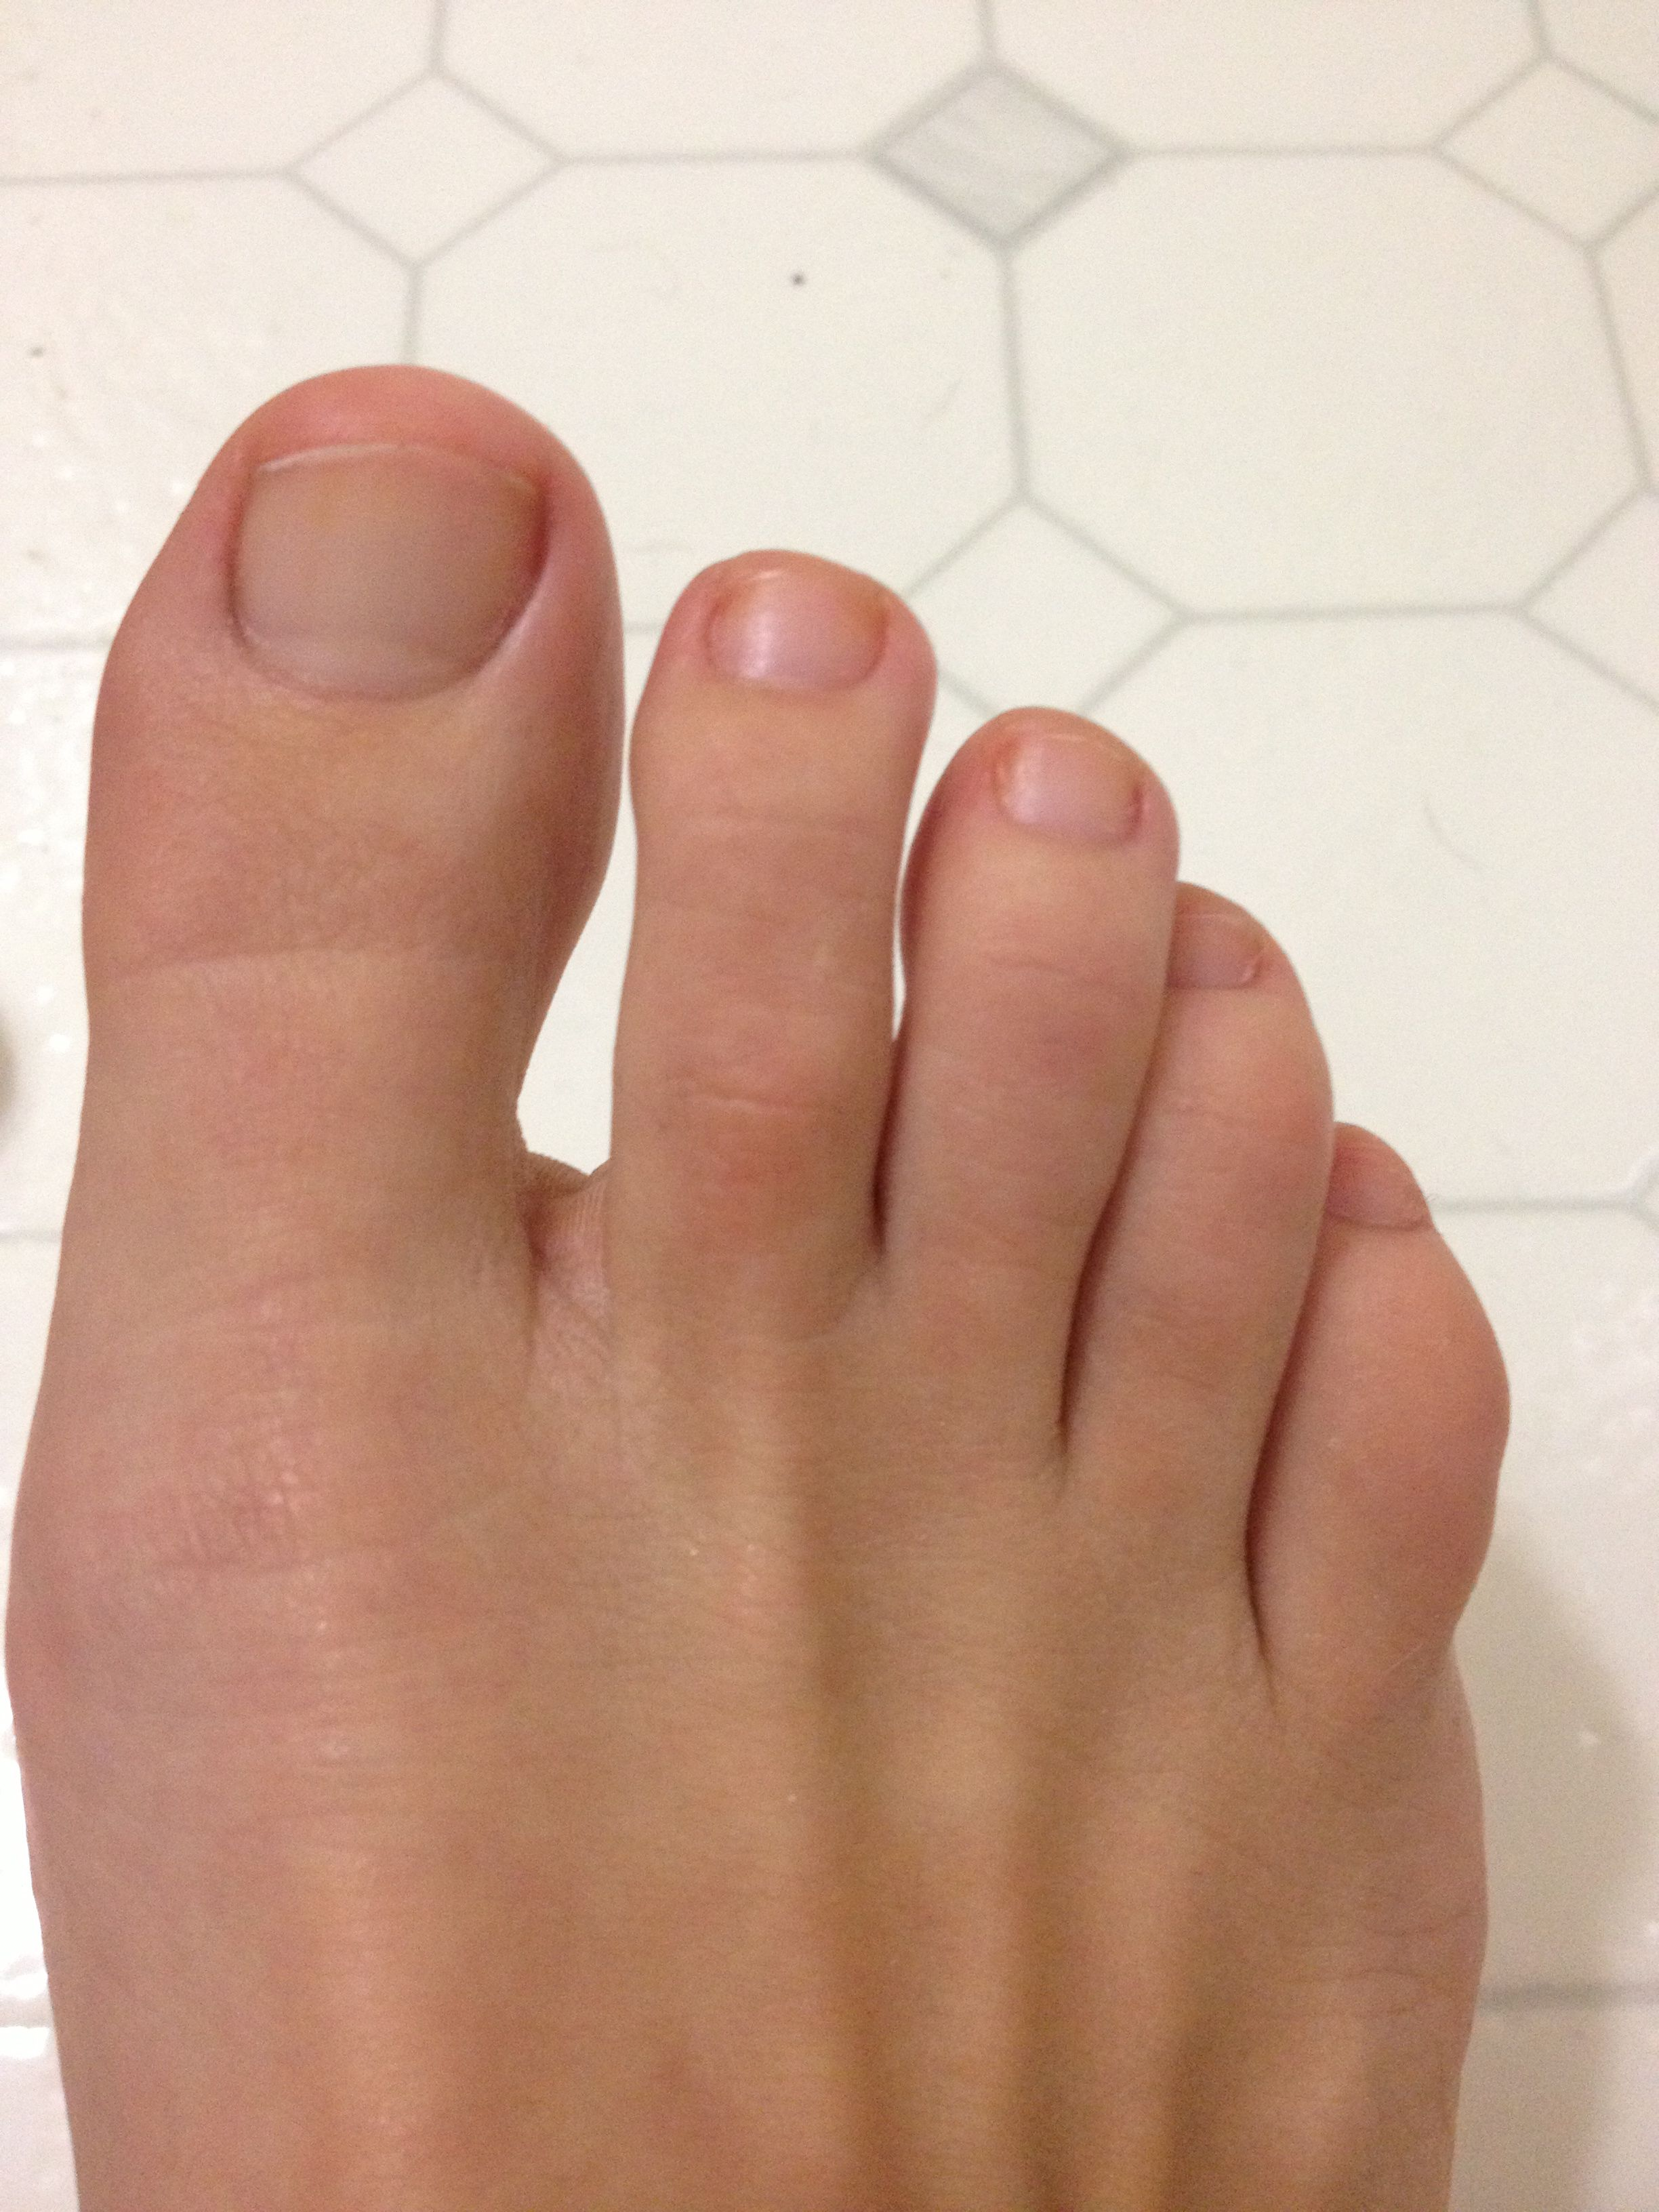 How To Whiten Nail Toenails Stained Yellow From Nail